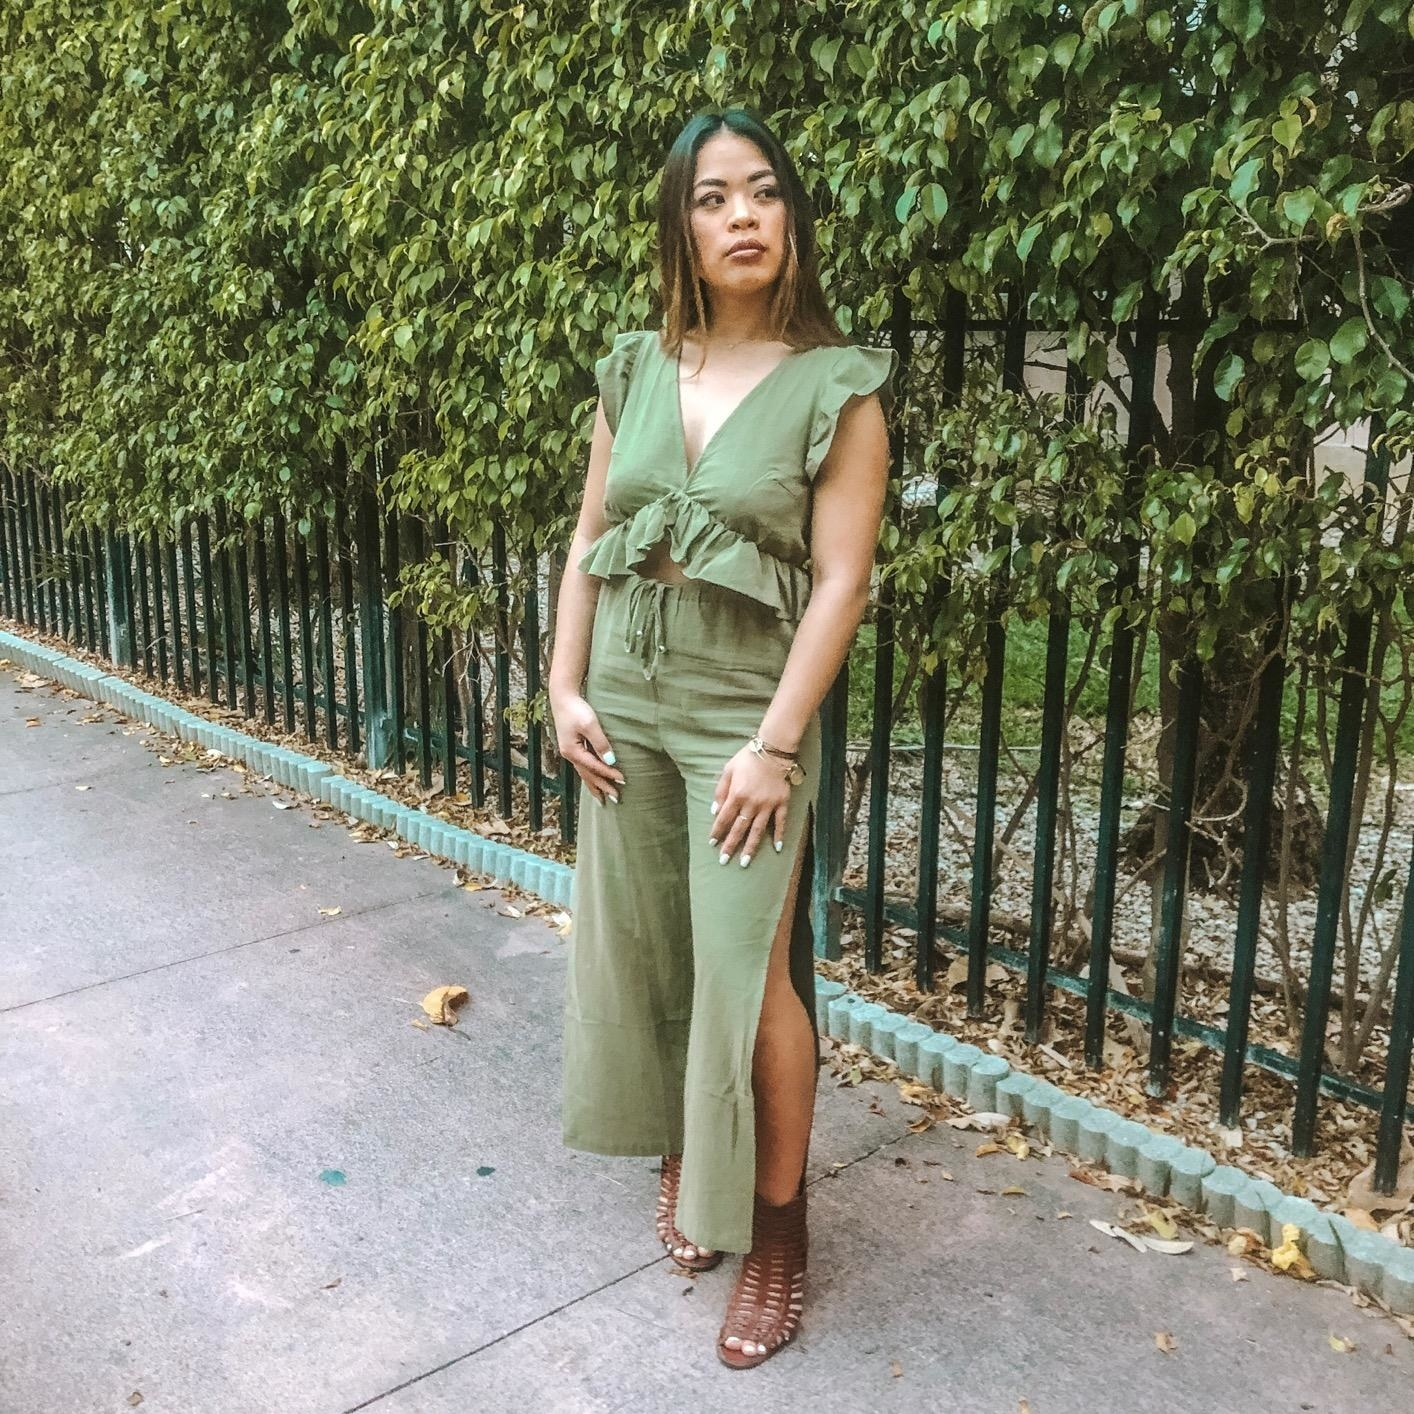 Reviewer wearing the set with pants with elastic waist and high slit on either side of the leg and  the top with a deep v-neck and ruffles along the hem and shoulders in green